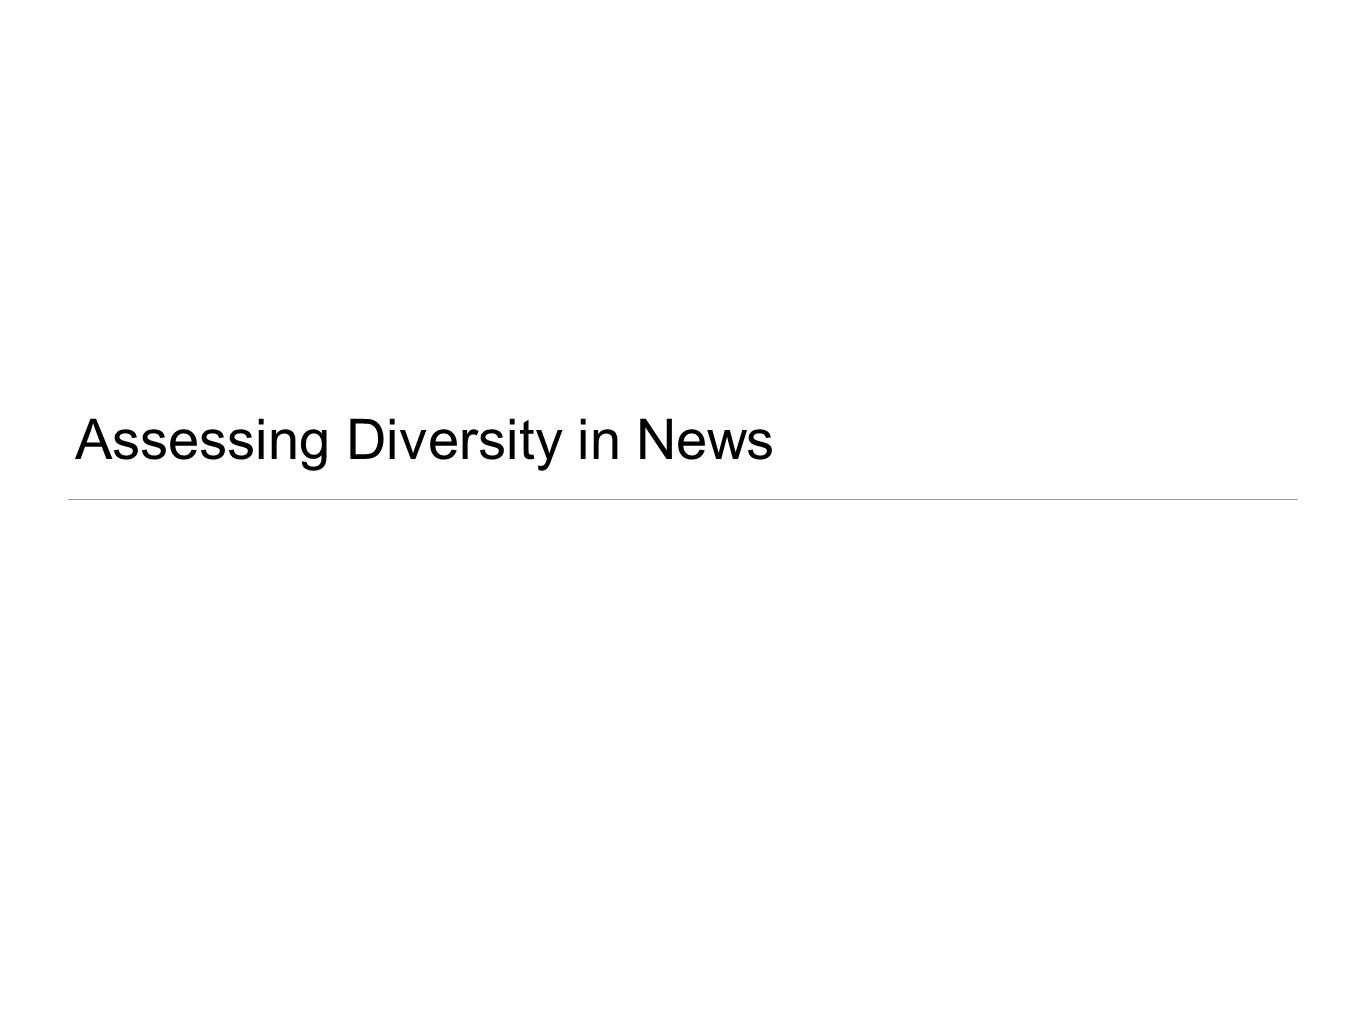 Assessing Diversity in News